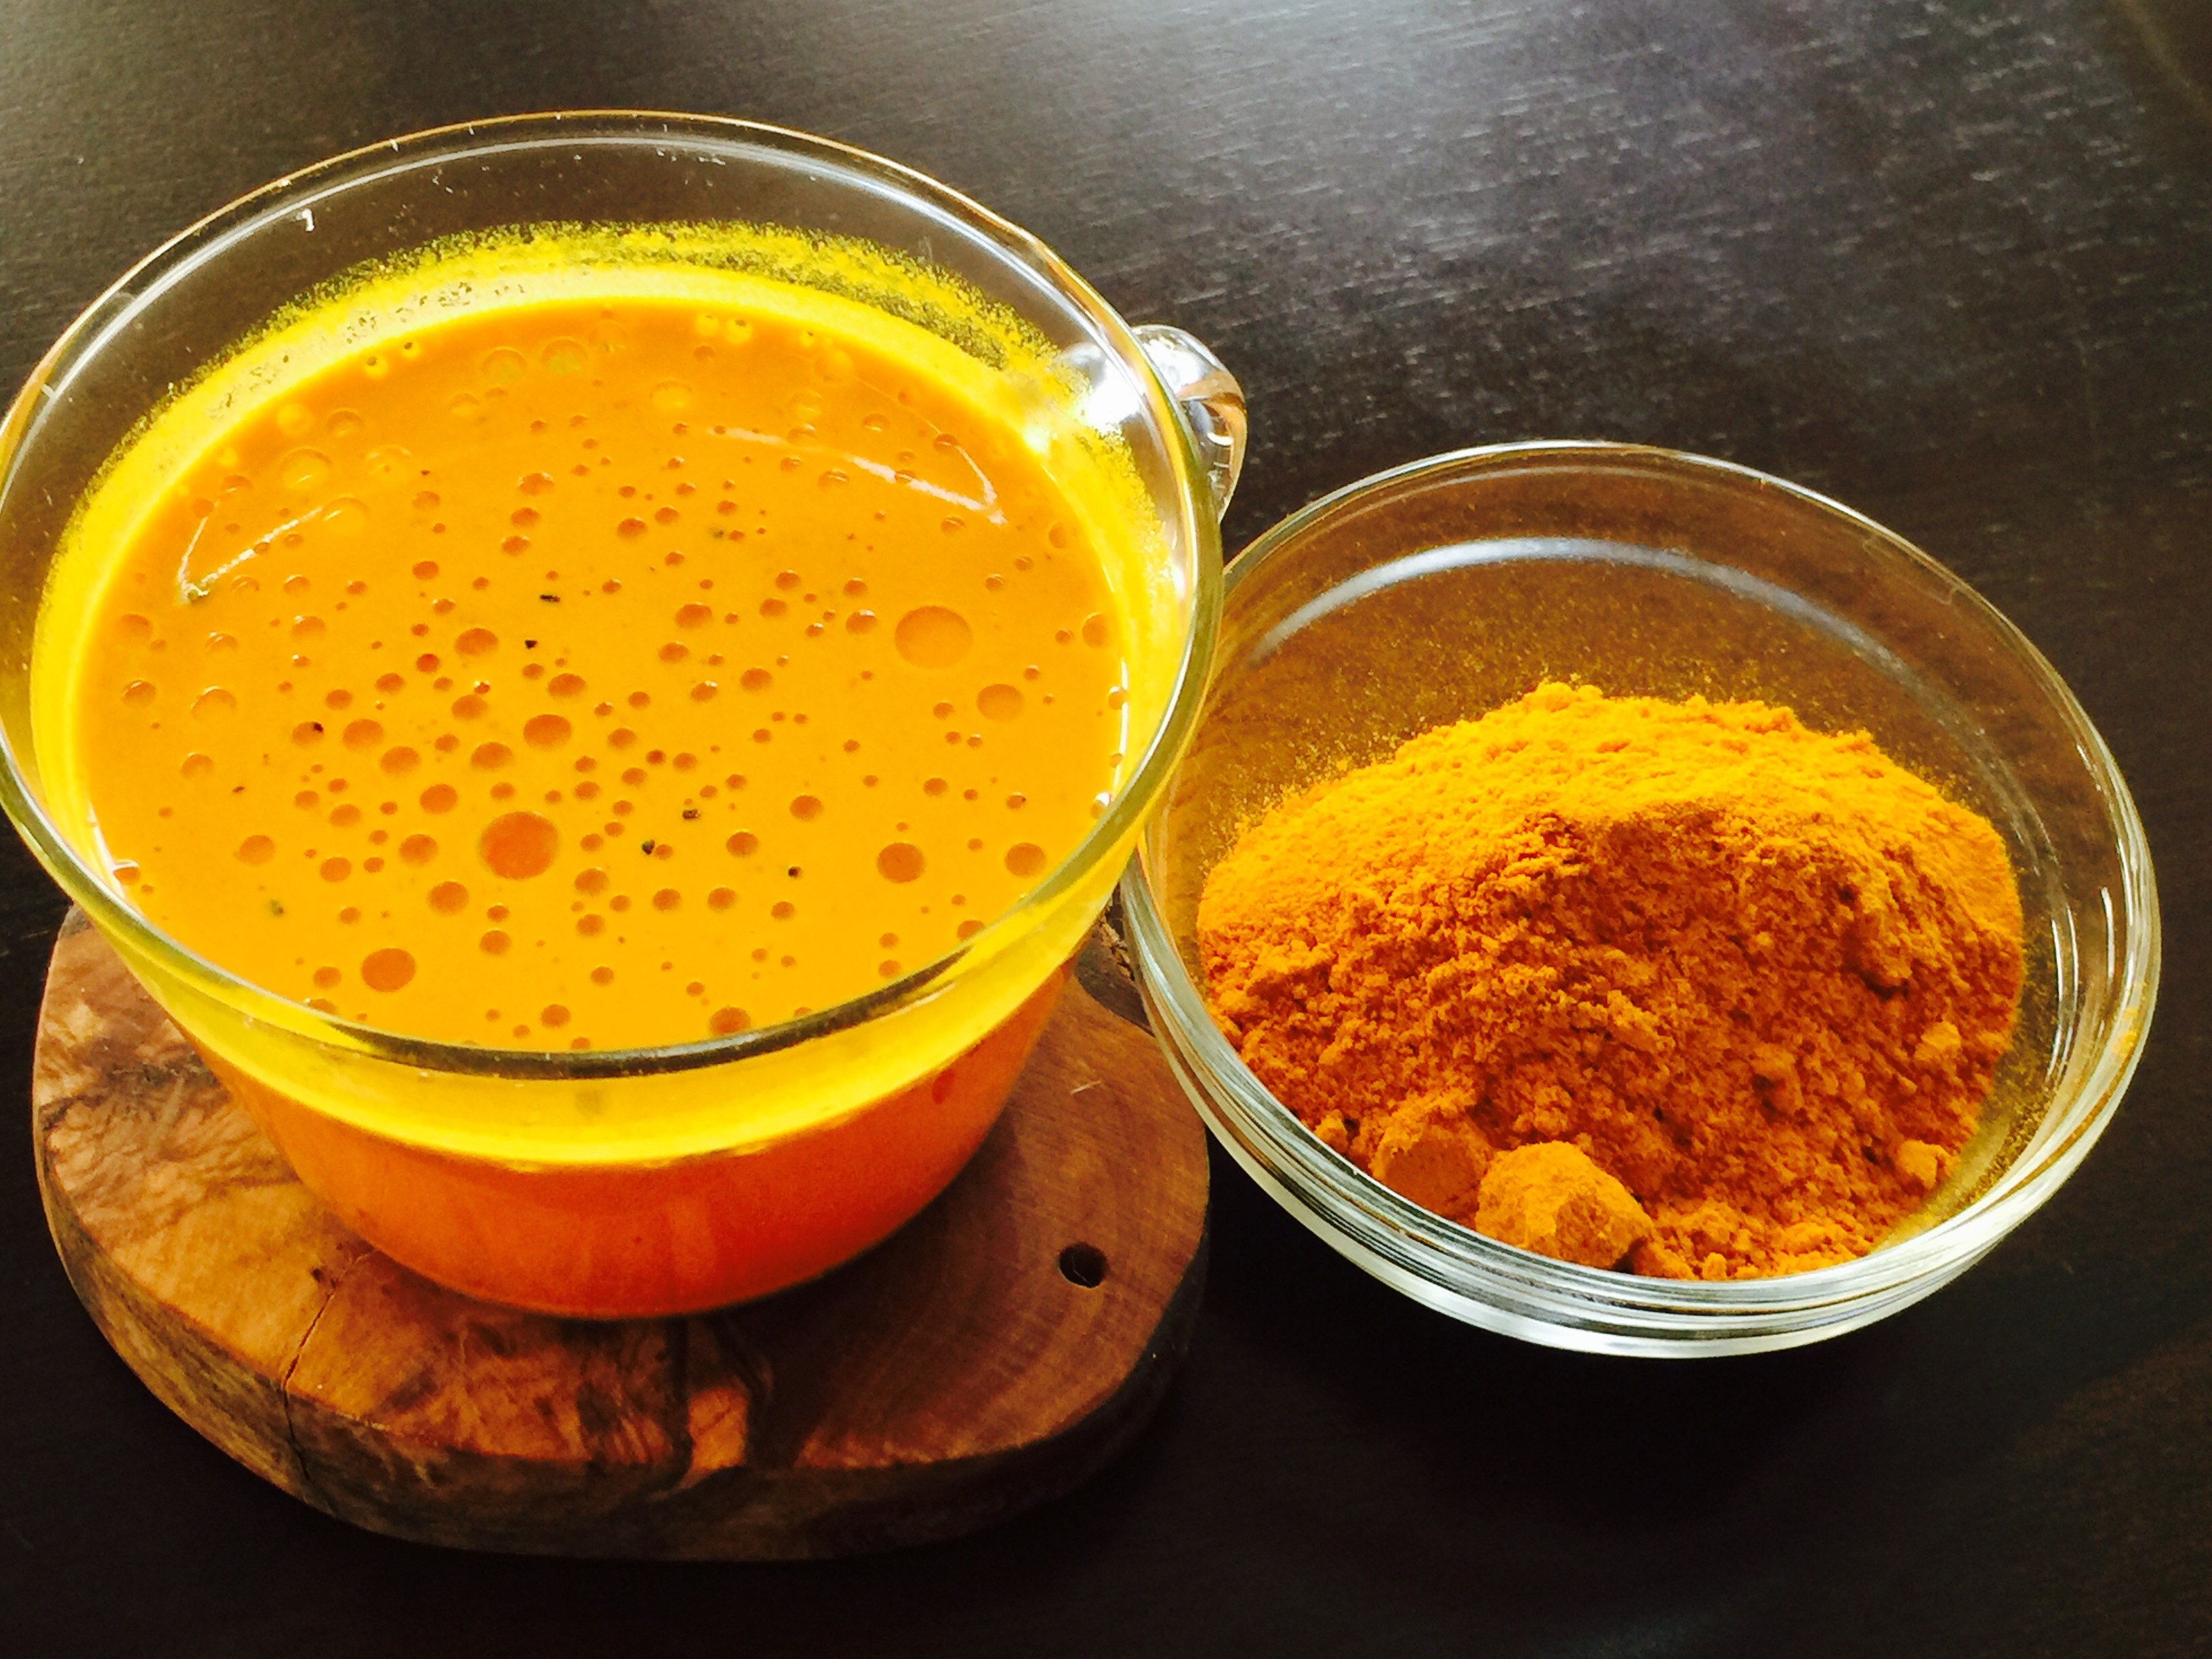 Chinese cancer cure herbs bibliography - Native To India And China Turmeric Has Traveled The Globe And Is One Of The Most Researched Root Spices In The World For Centuries This Spice Has Been Used